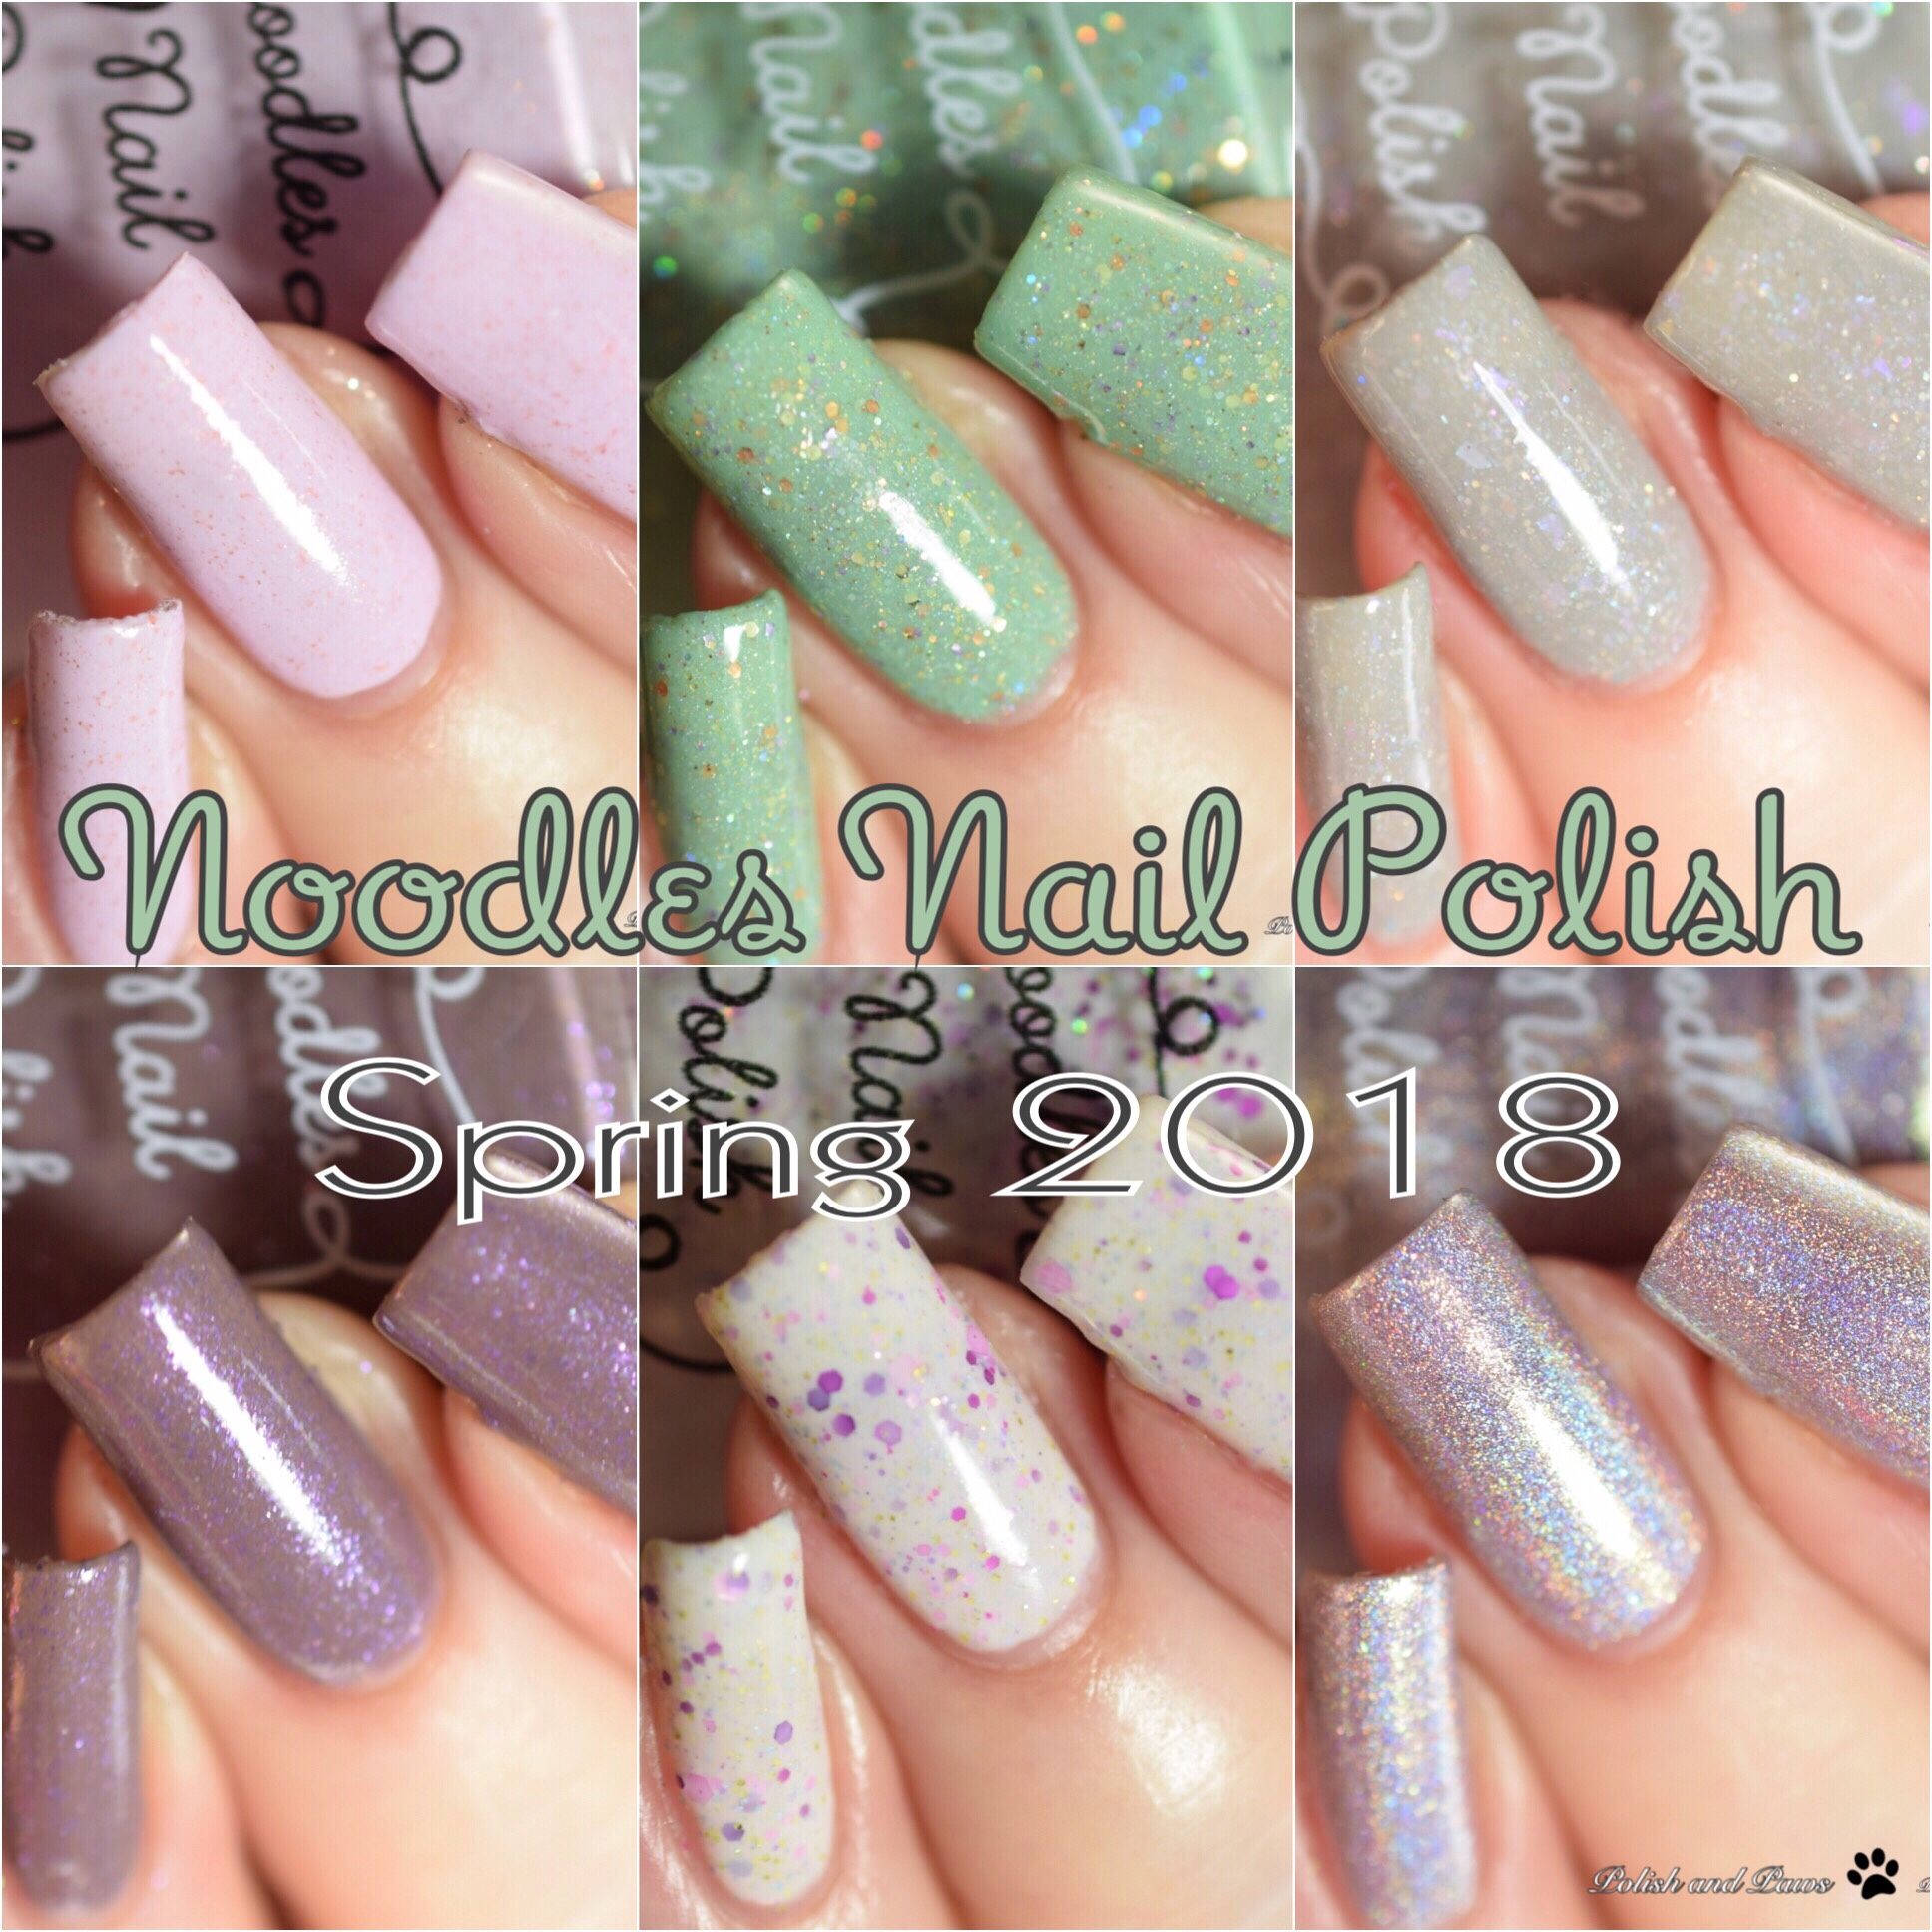 Noodles Nail Polish Spring 2018 Collection